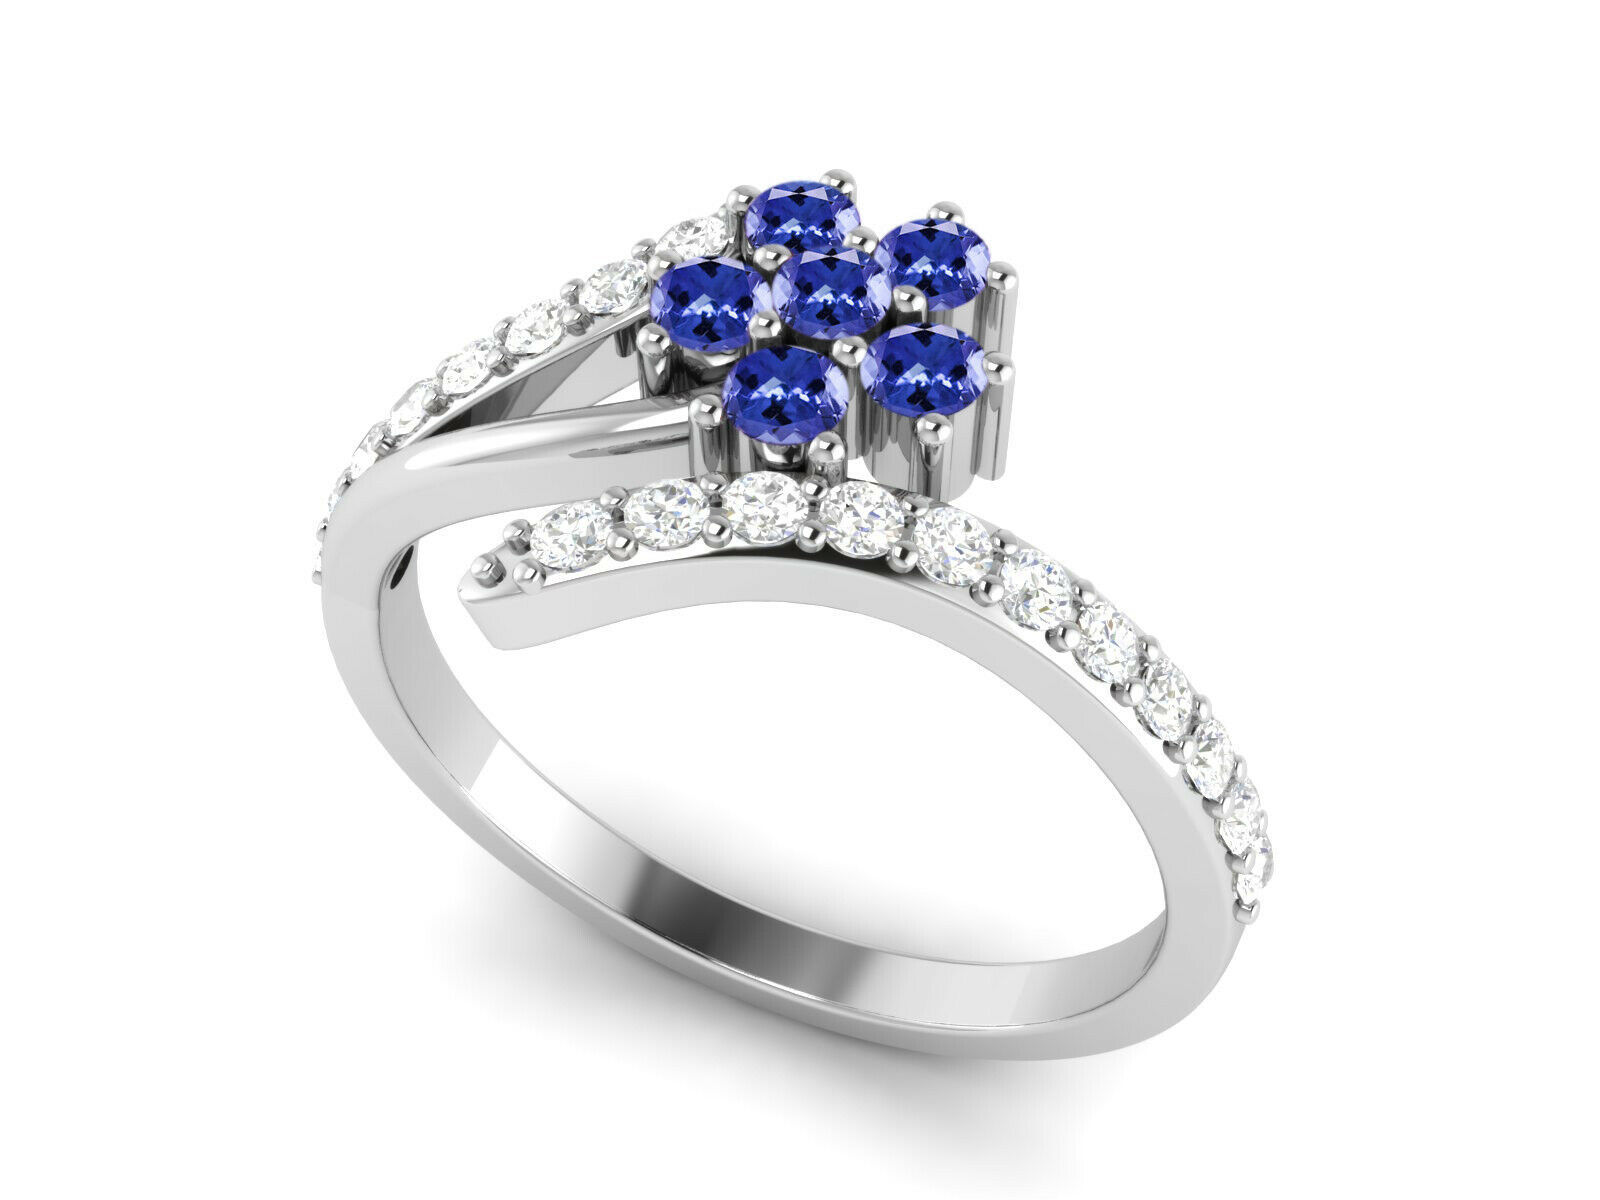 Primary image for 925 Sterling Silver 0.73 Ctw Tanzanite Gemstone Solitaire Accents Women Ring